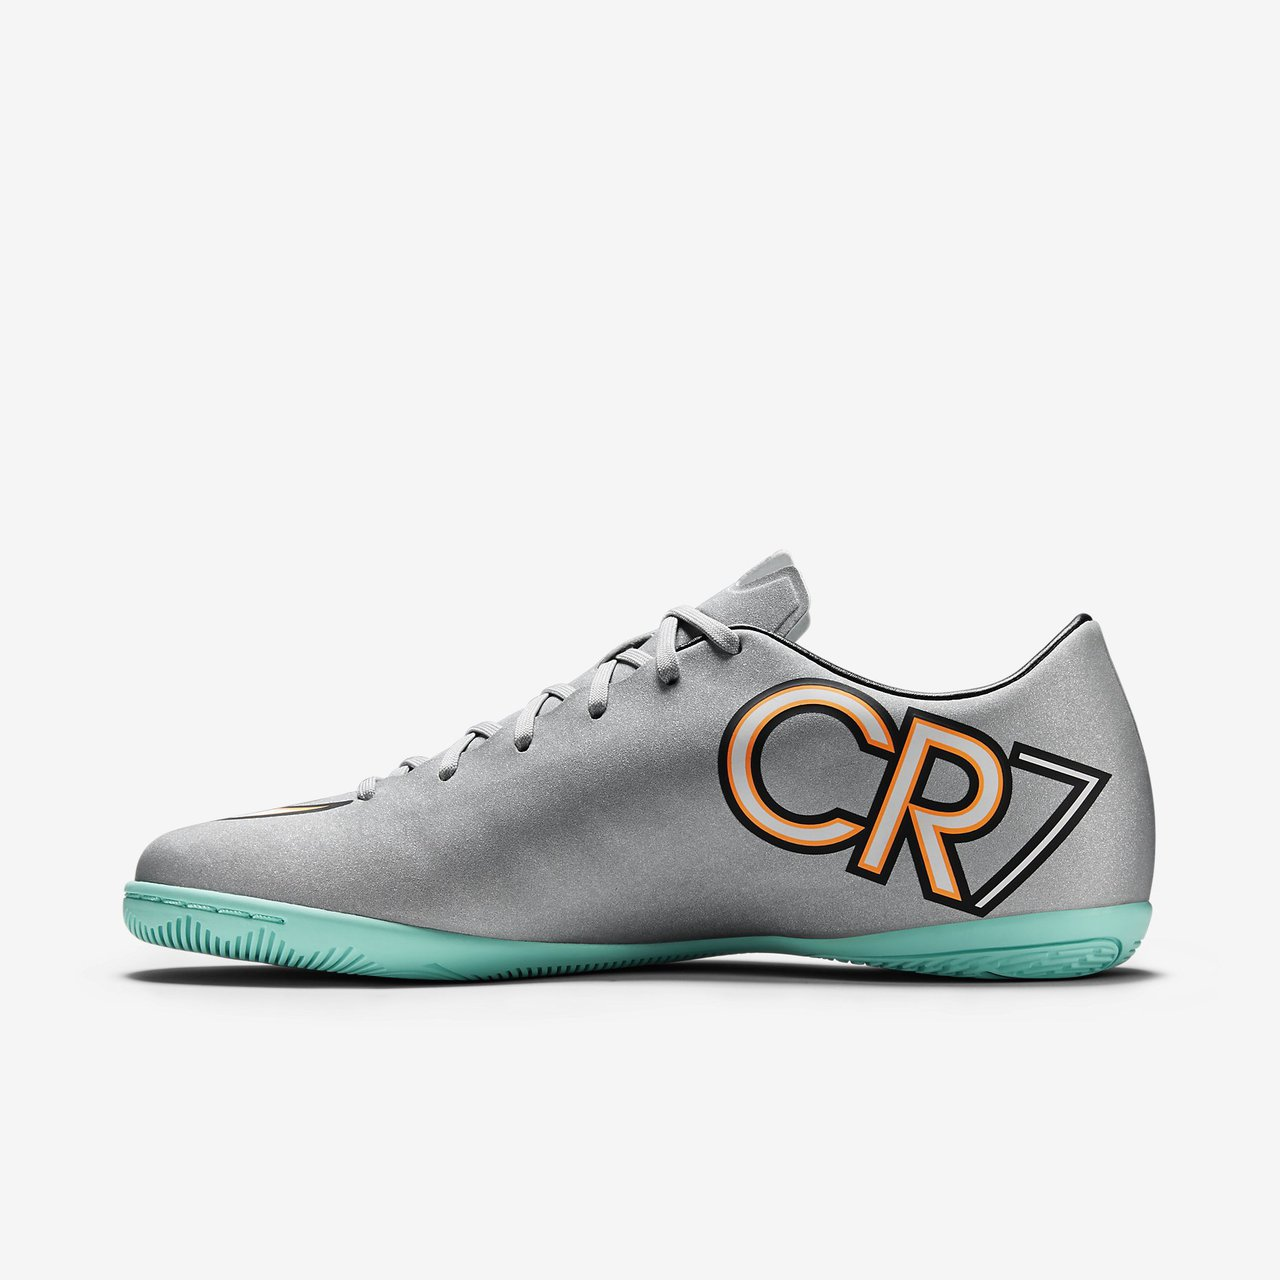 ... aliexpress click to enlarge image nike mercurial victory v ic cr7 ae3cc  f0bc3 8f9c1590558d5